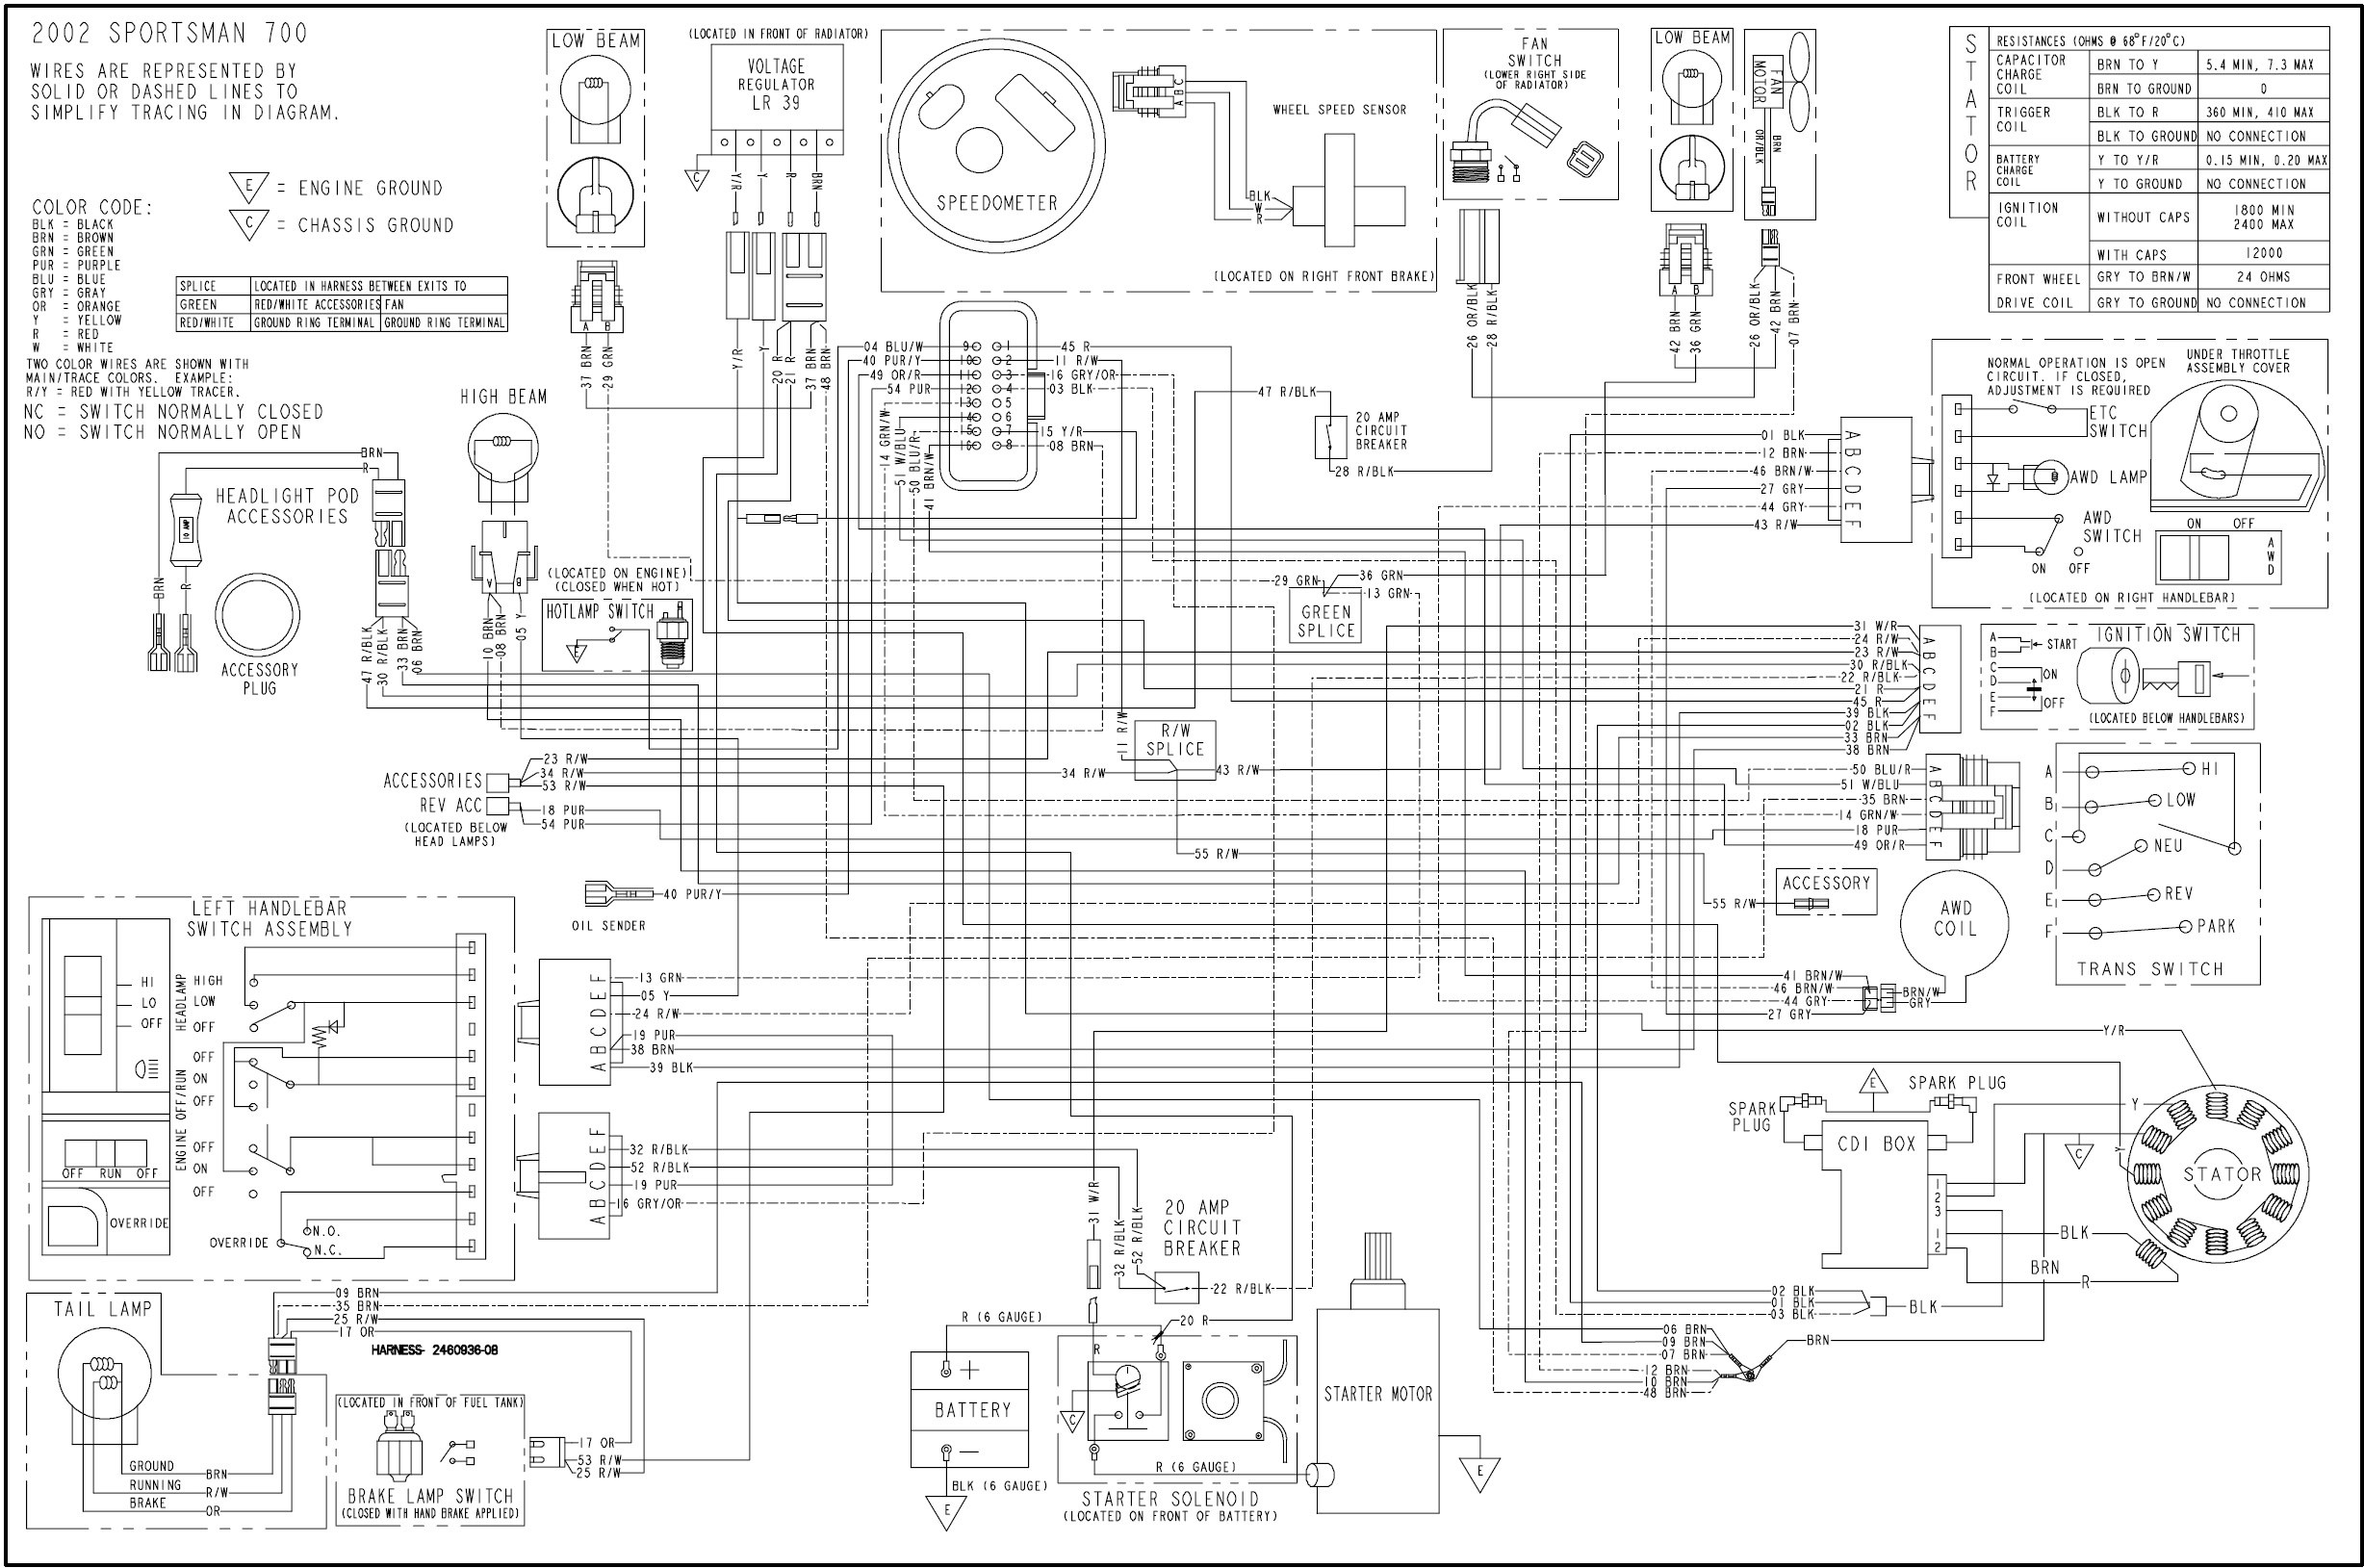 polaris ranger ignition switch wiring diagram for interconnected smoke detectors 2001 sportsman 700 twin no start atv forum